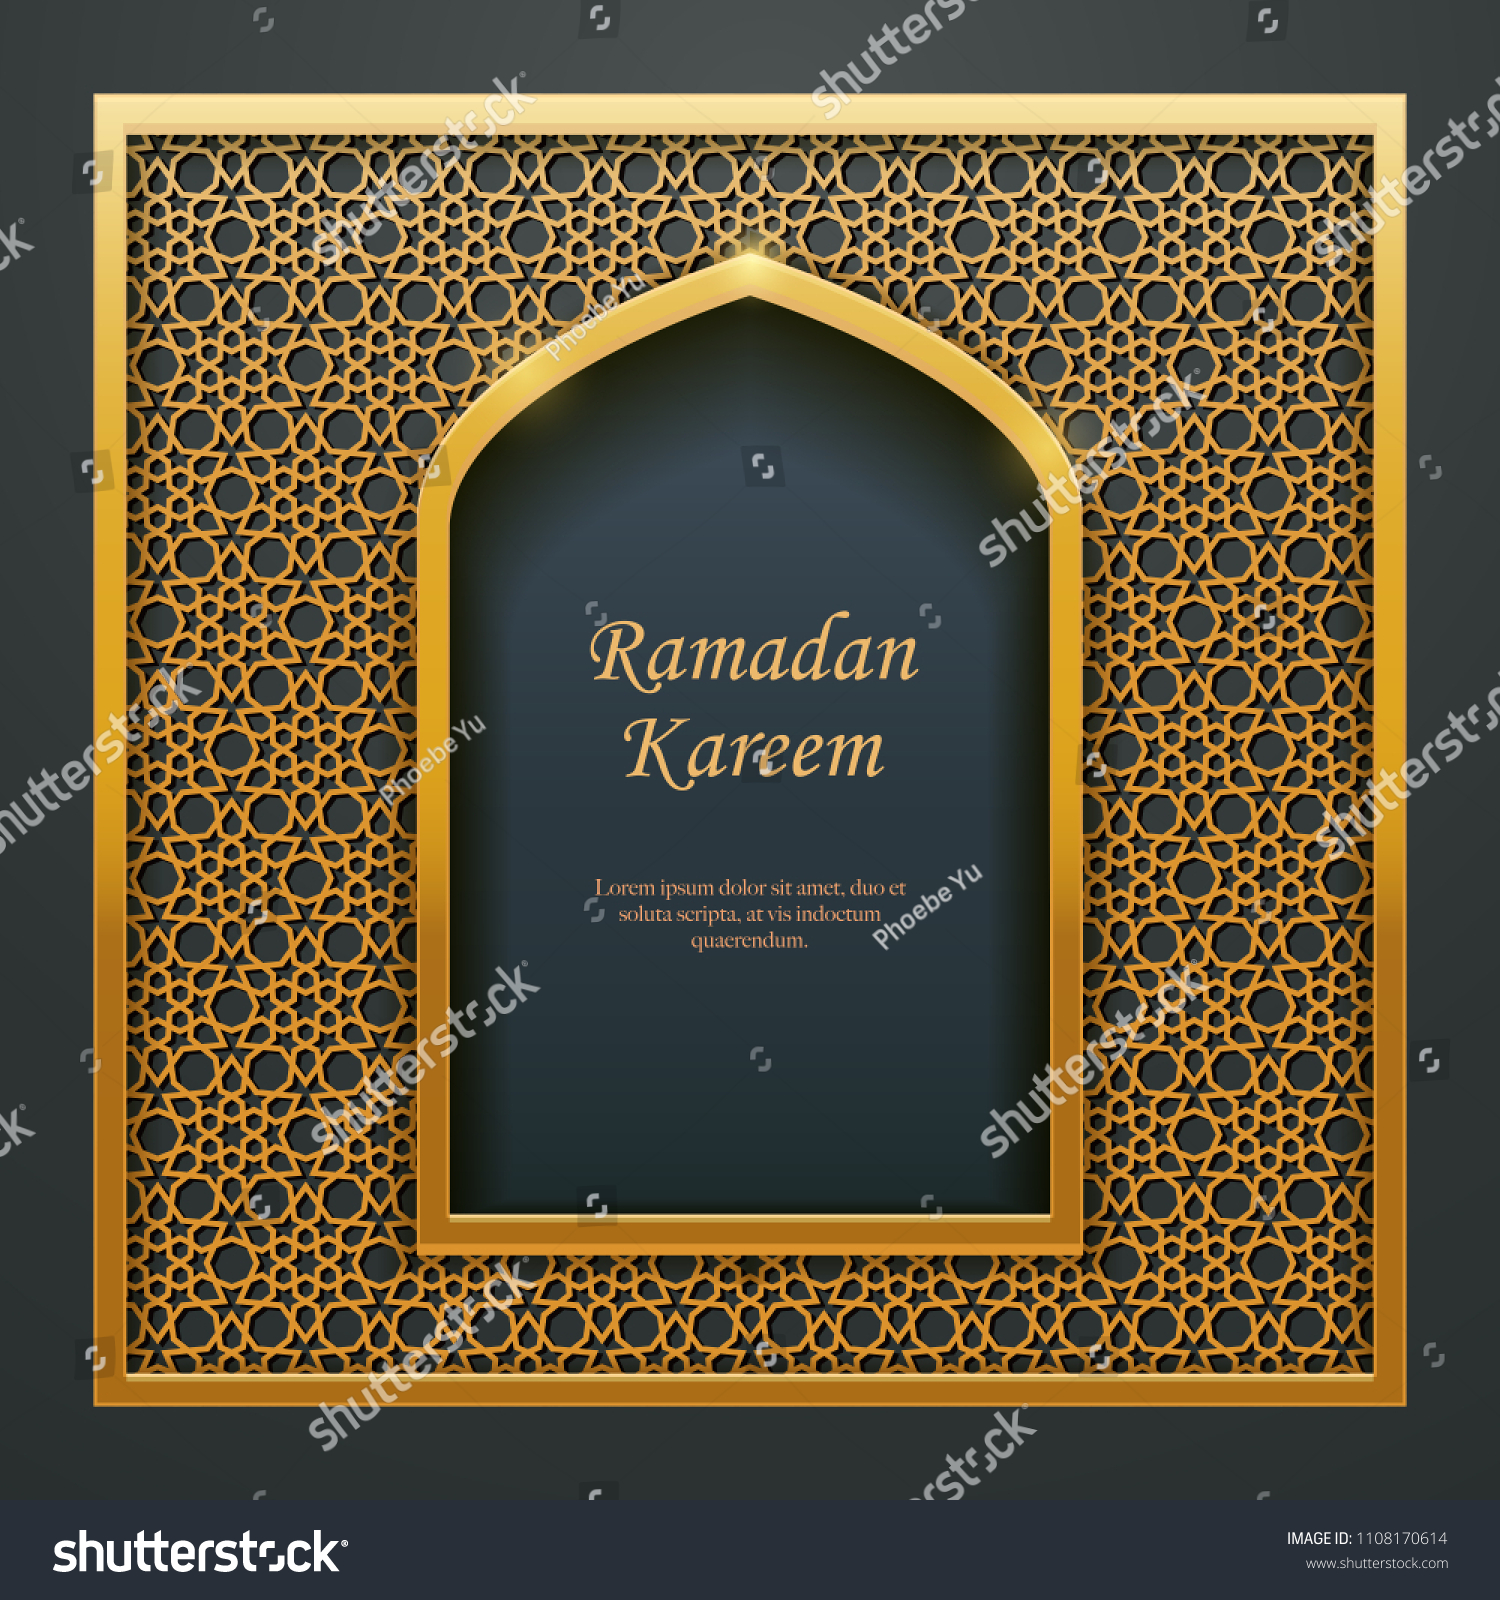 Ramadan Kareem Islamic Design Mosque Door Window Tracery, Ideal For